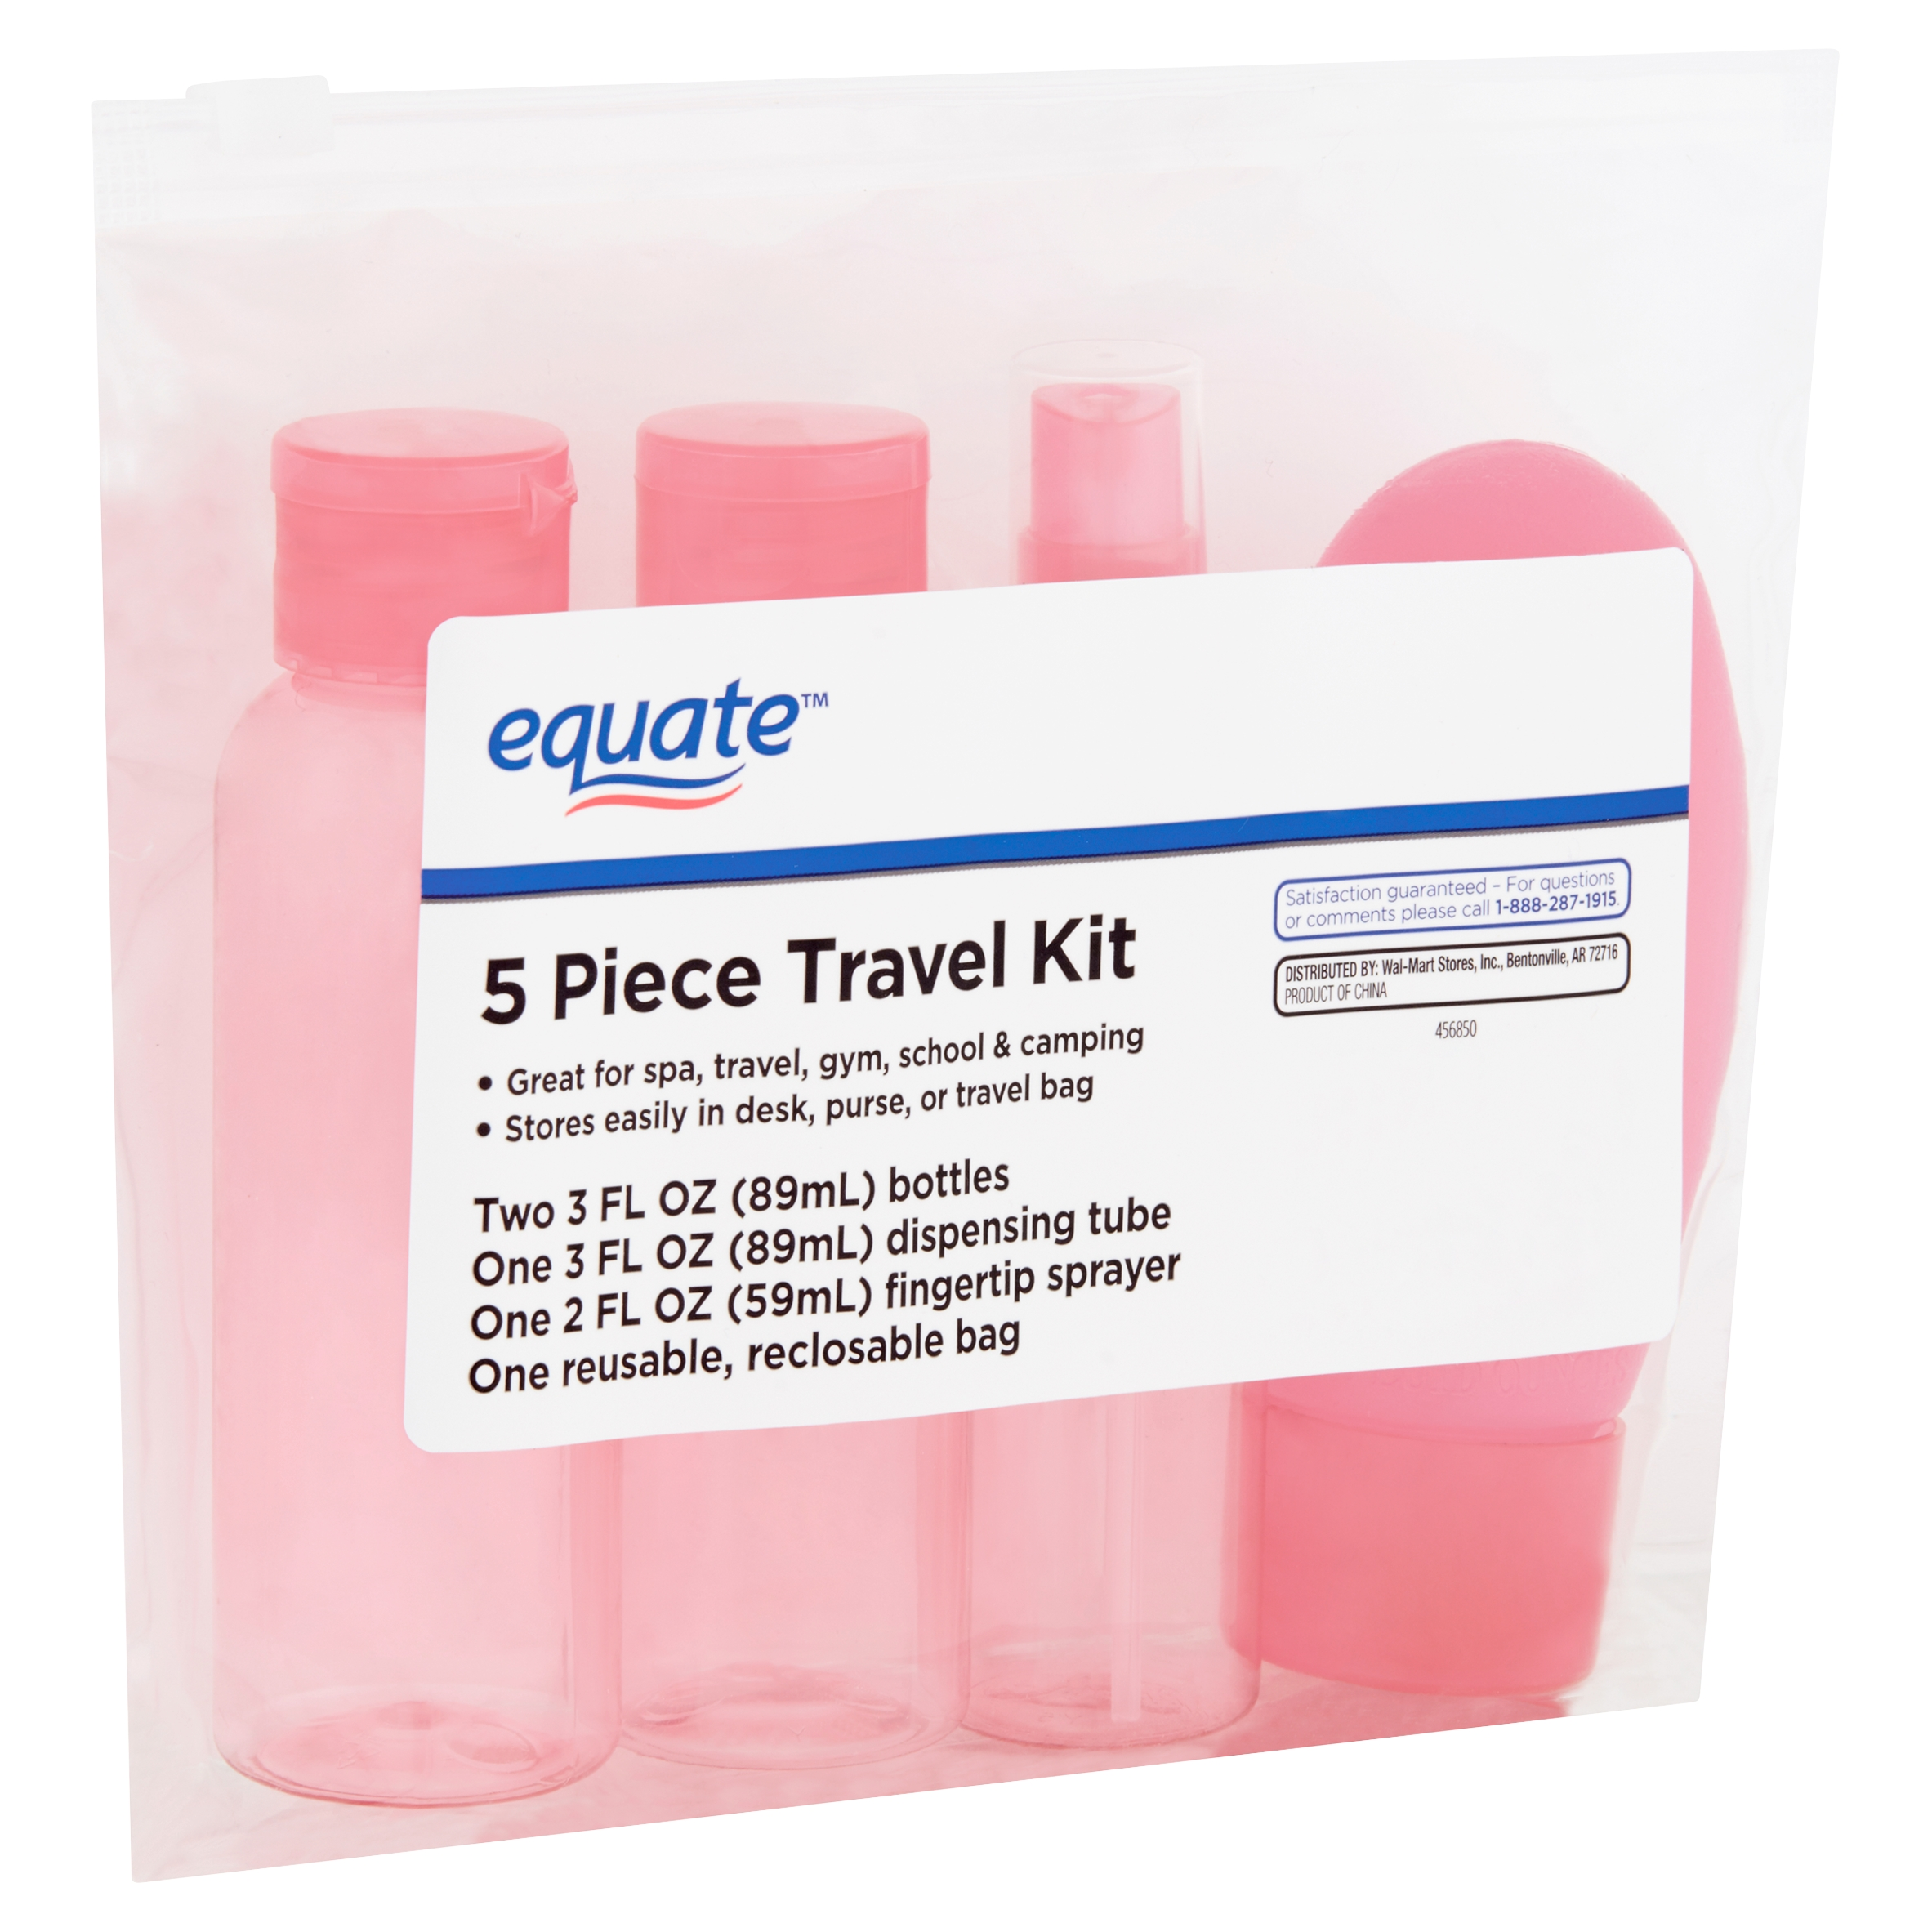 Equate Travel Kit Accessory, 5 piece